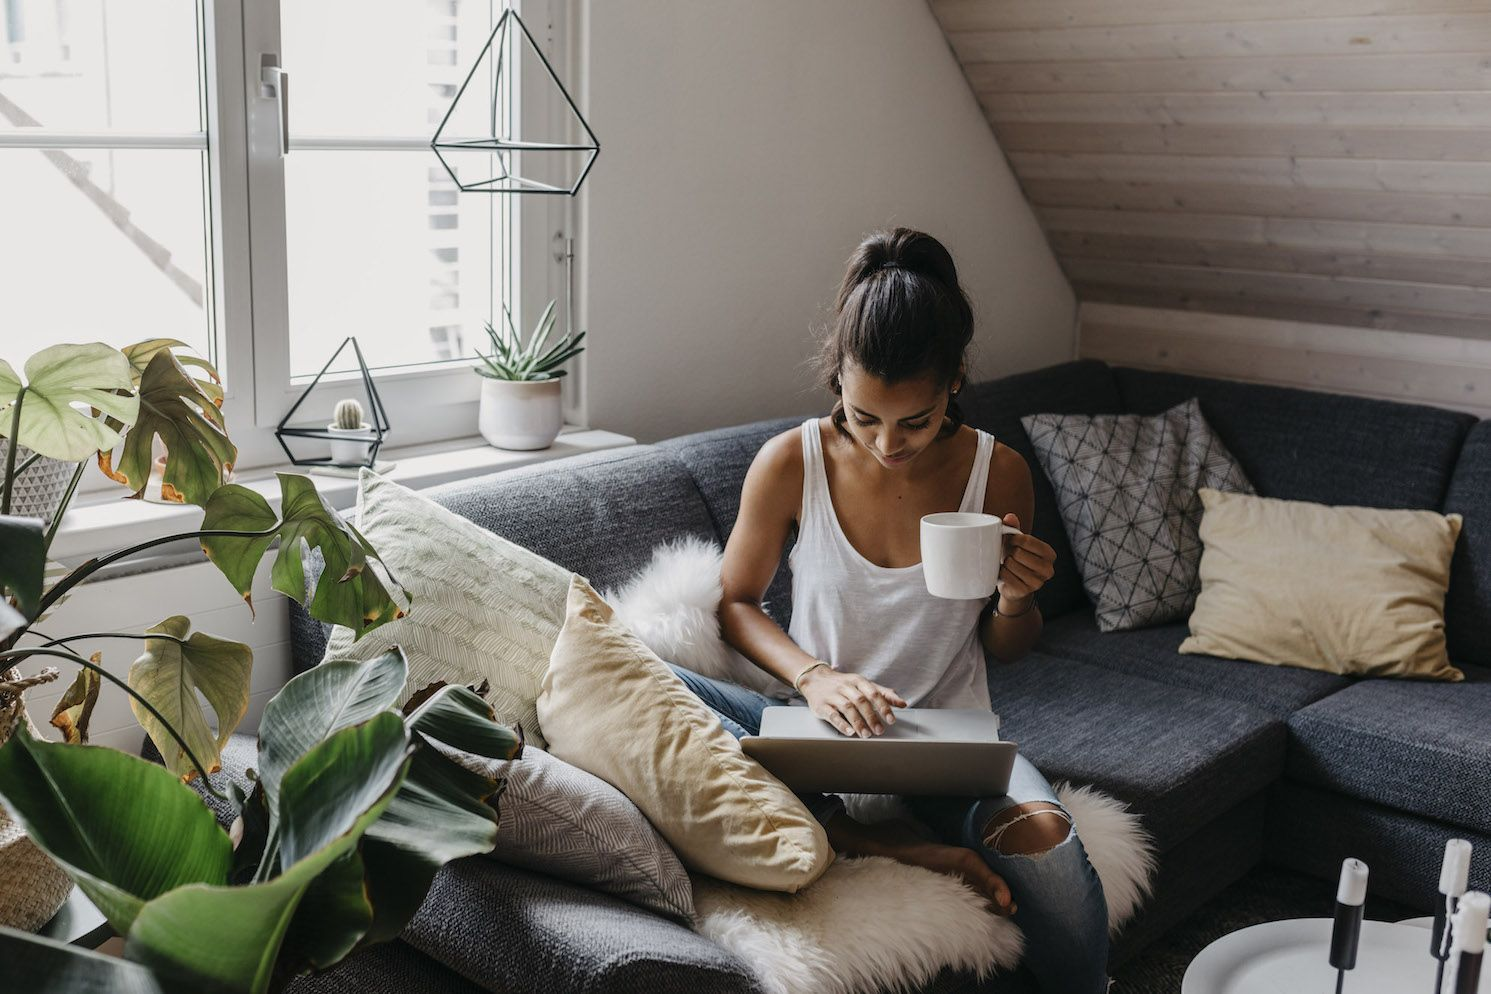 20 Of The Best Online Courses If You Want To Learn Everything, From Piano Playing To Photography